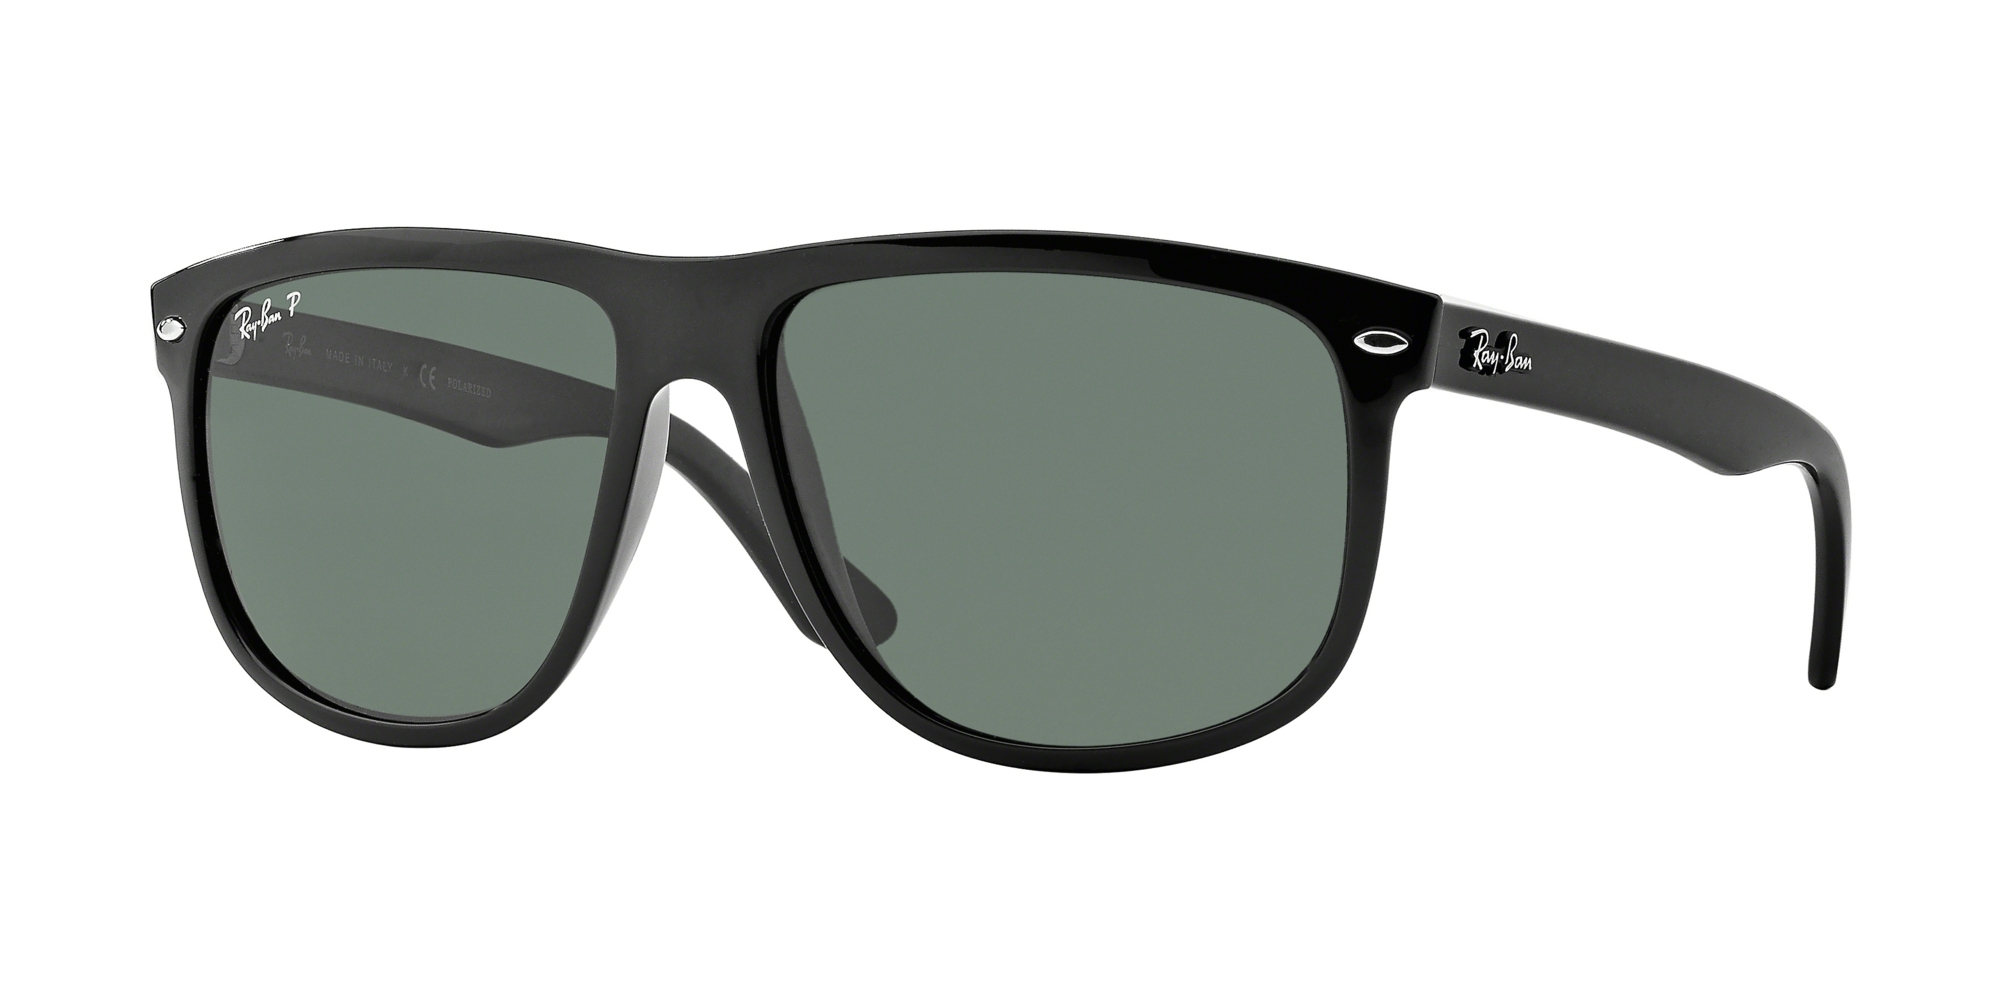 RAY-BAN BOYFRIEND RB 4147 601/58 POLARIZADAS-360